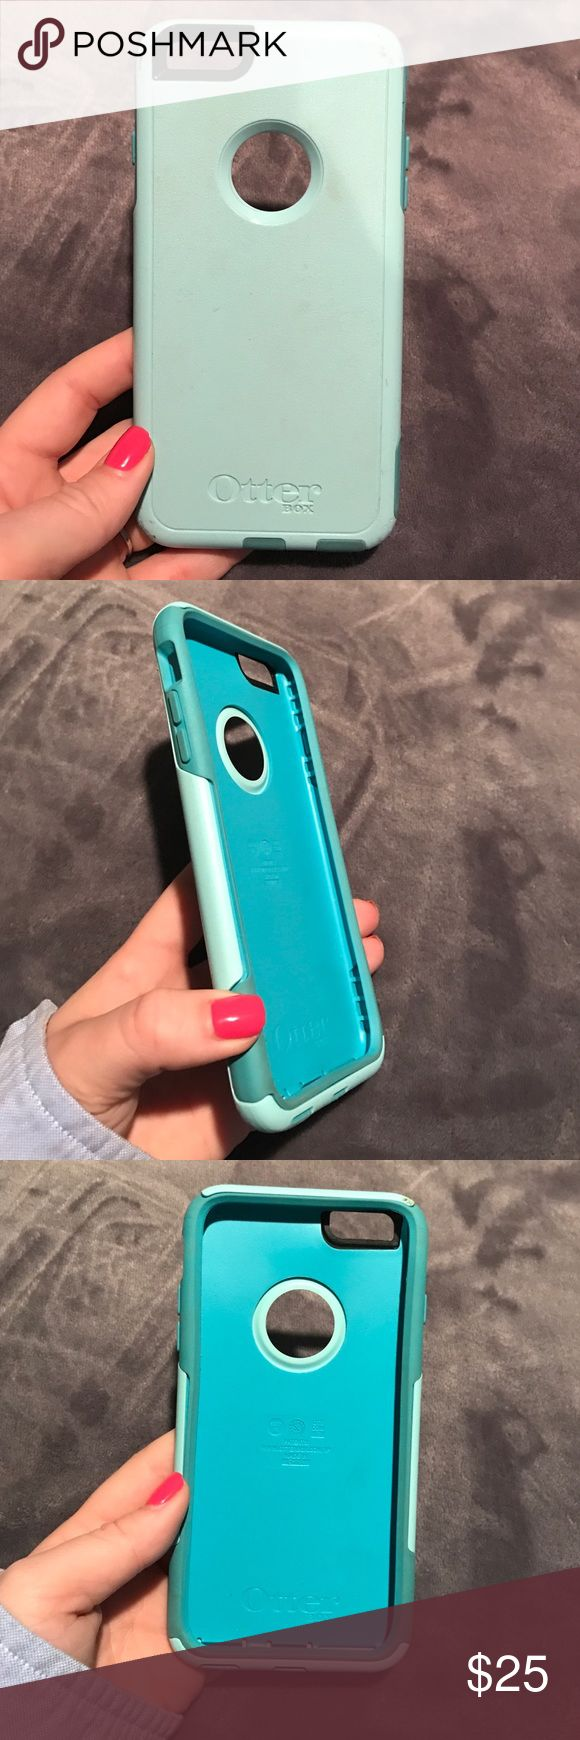 Otter box case IPhone 6s Plus Light blue and darker blue IPhone 6s Plus otterbox case. Has some scuffs. I cracked my phone so I upgraded! Just looking to get rid of some cases. Accessories Phone Cases